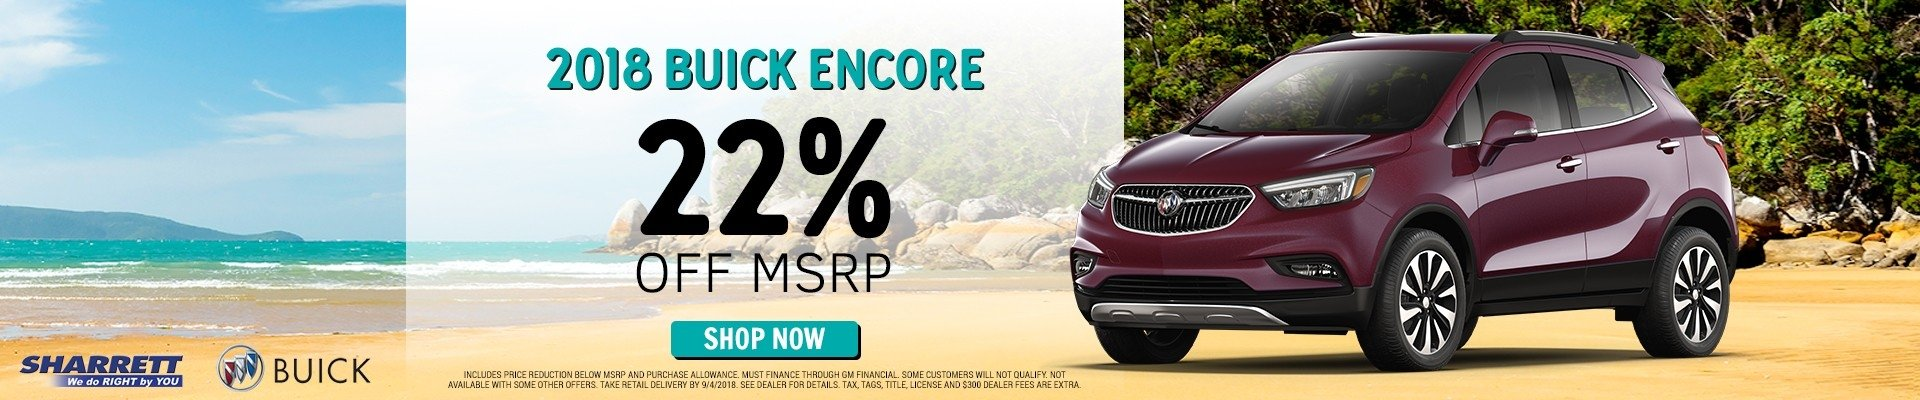 Get a 2018 Buick Encore for 22% off MSRP | Sharrett Buick